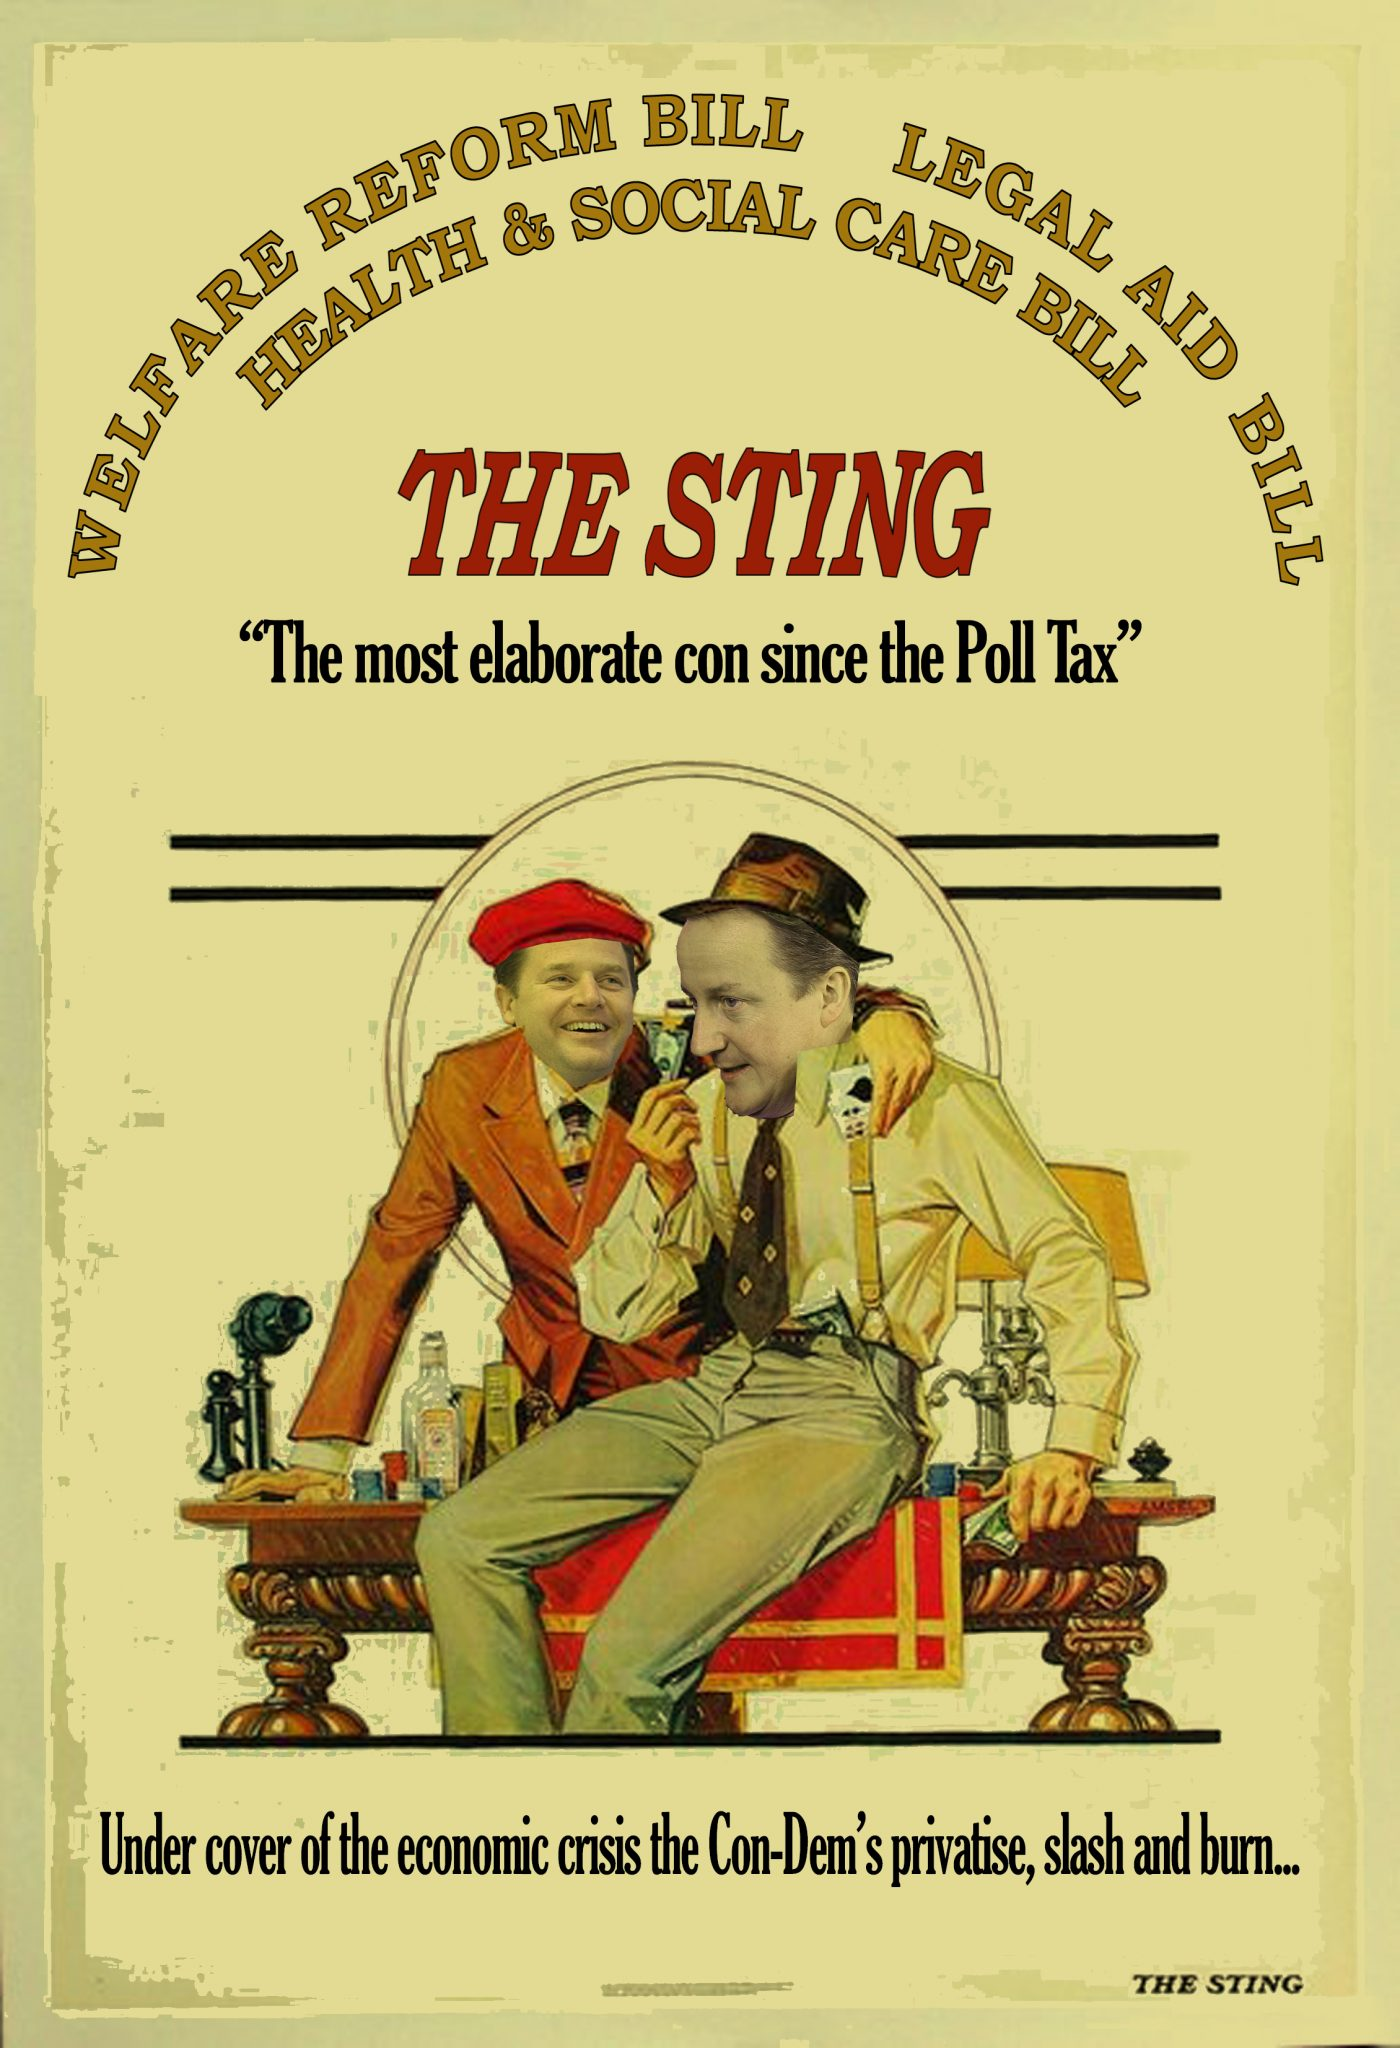 the Sting :poster featuring 2 men, seated at table, one holding playing cards, the other cash in hand. 'Under cover of the economic crisis, the condems privatise, slash and burn...'